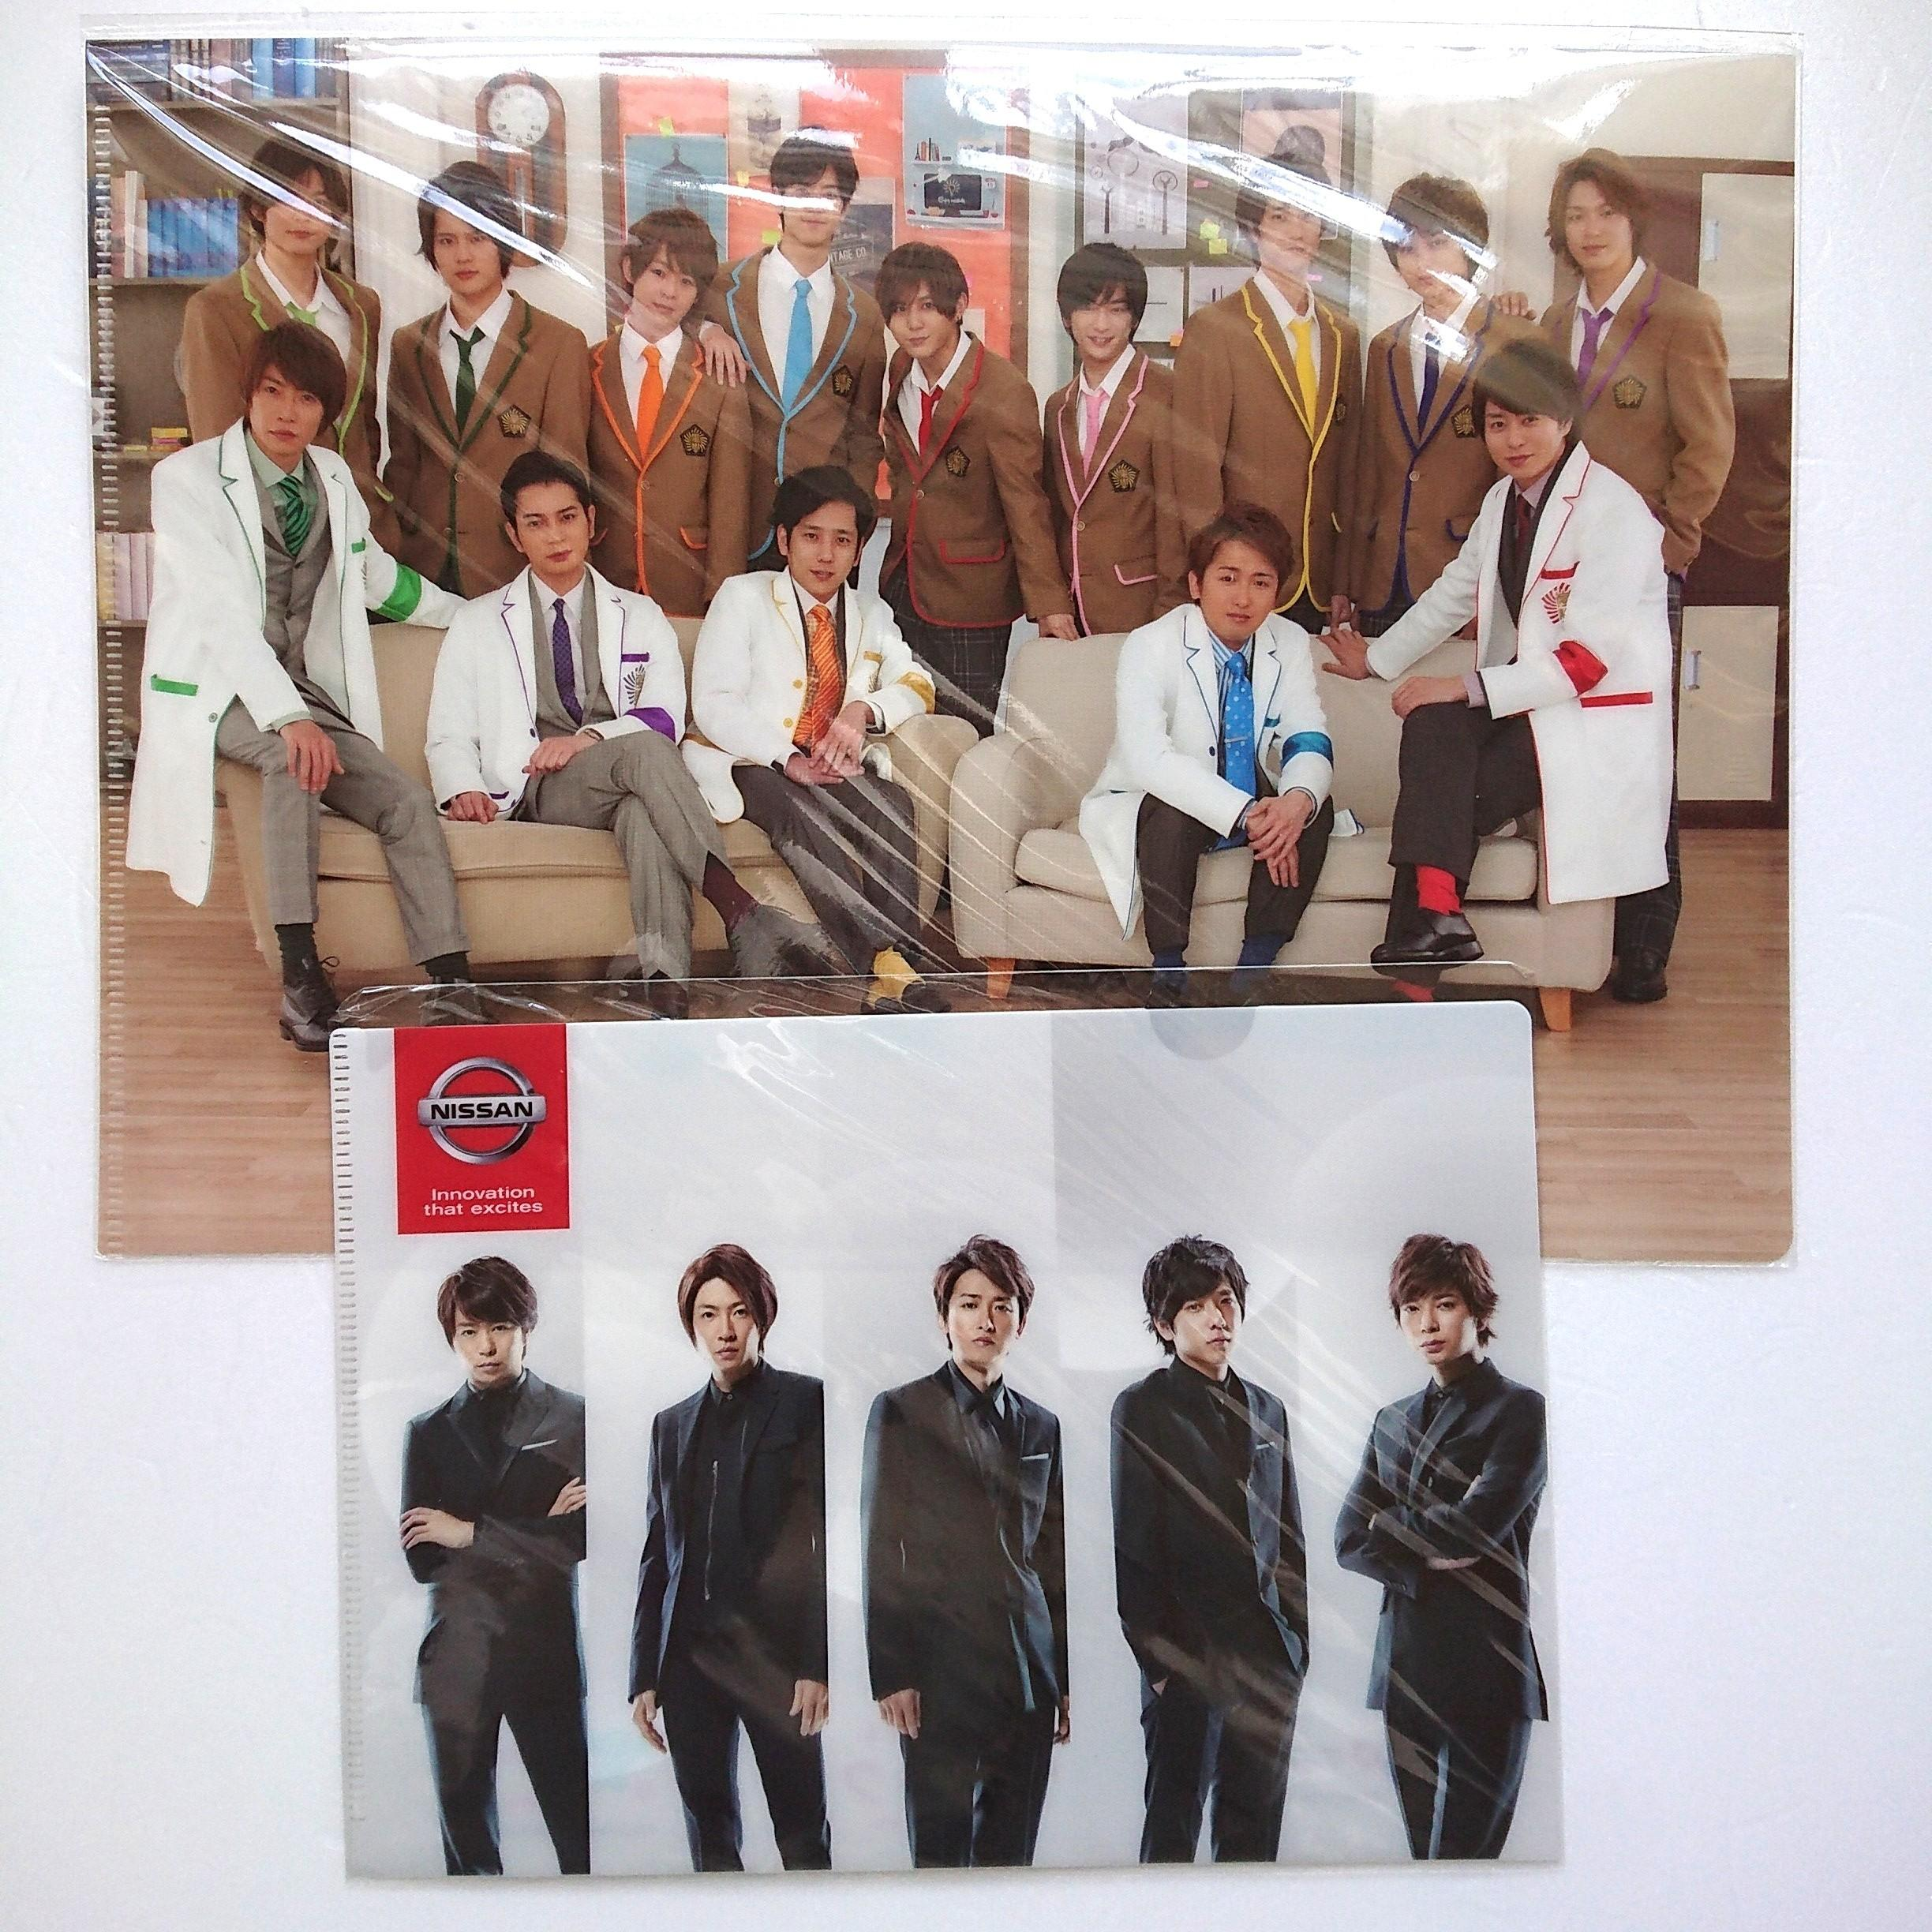 ARASHI 嵐學 Nissan File set